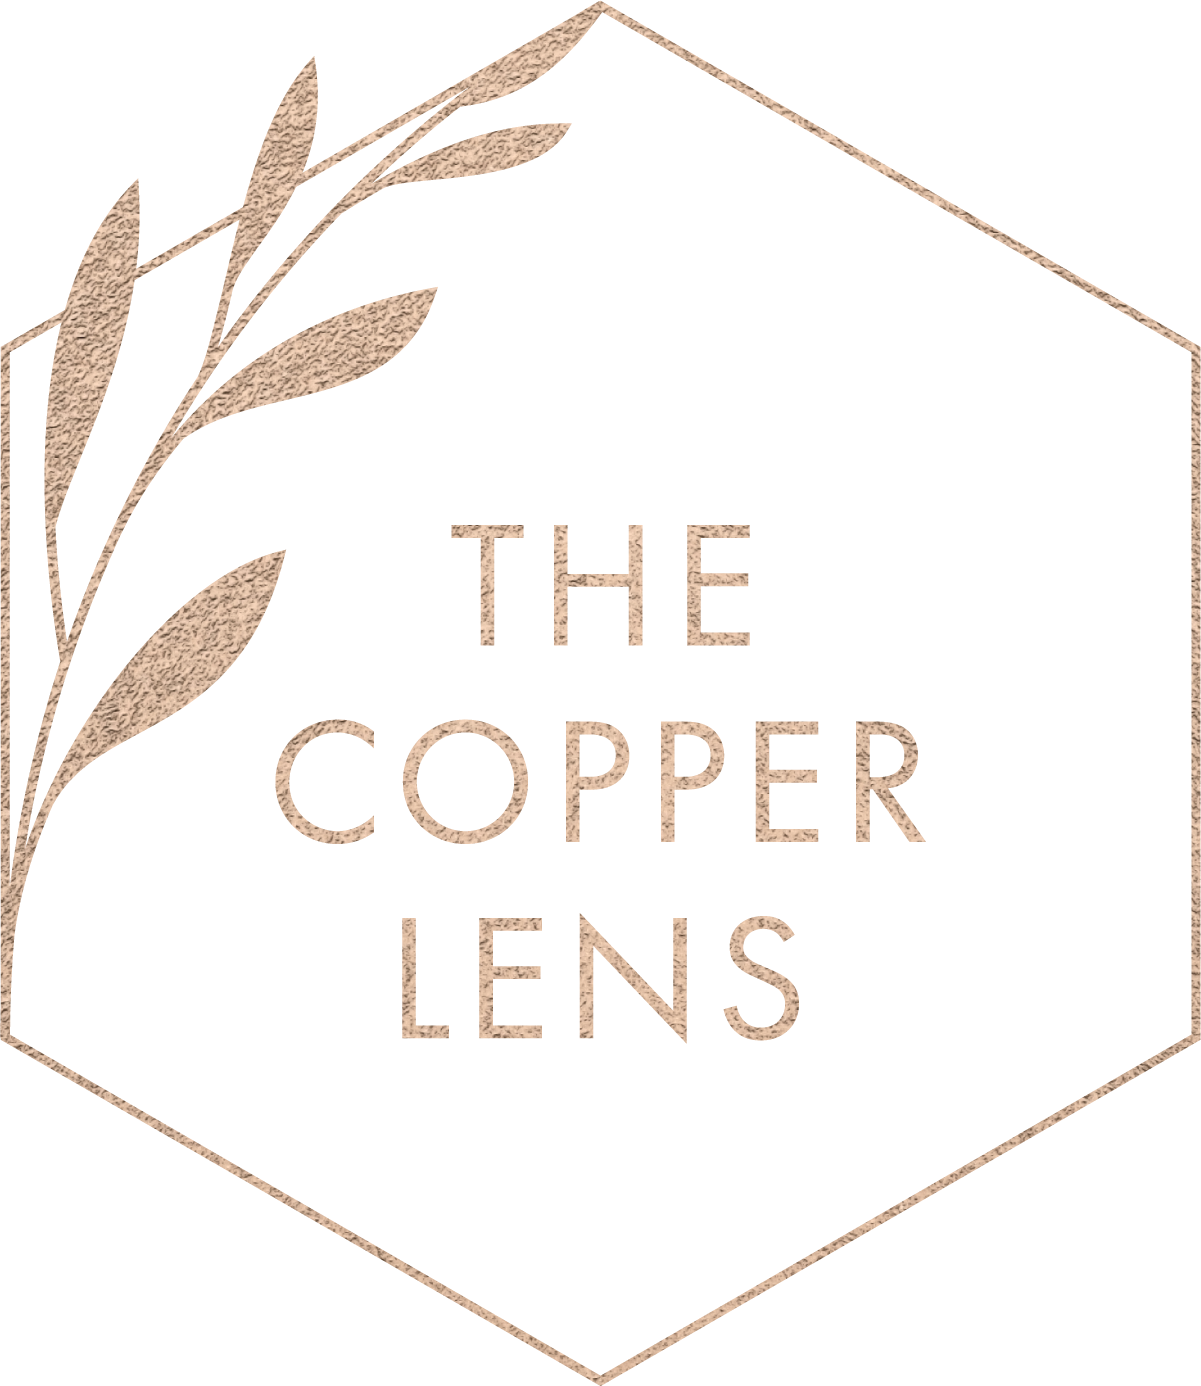 The Copper Lens